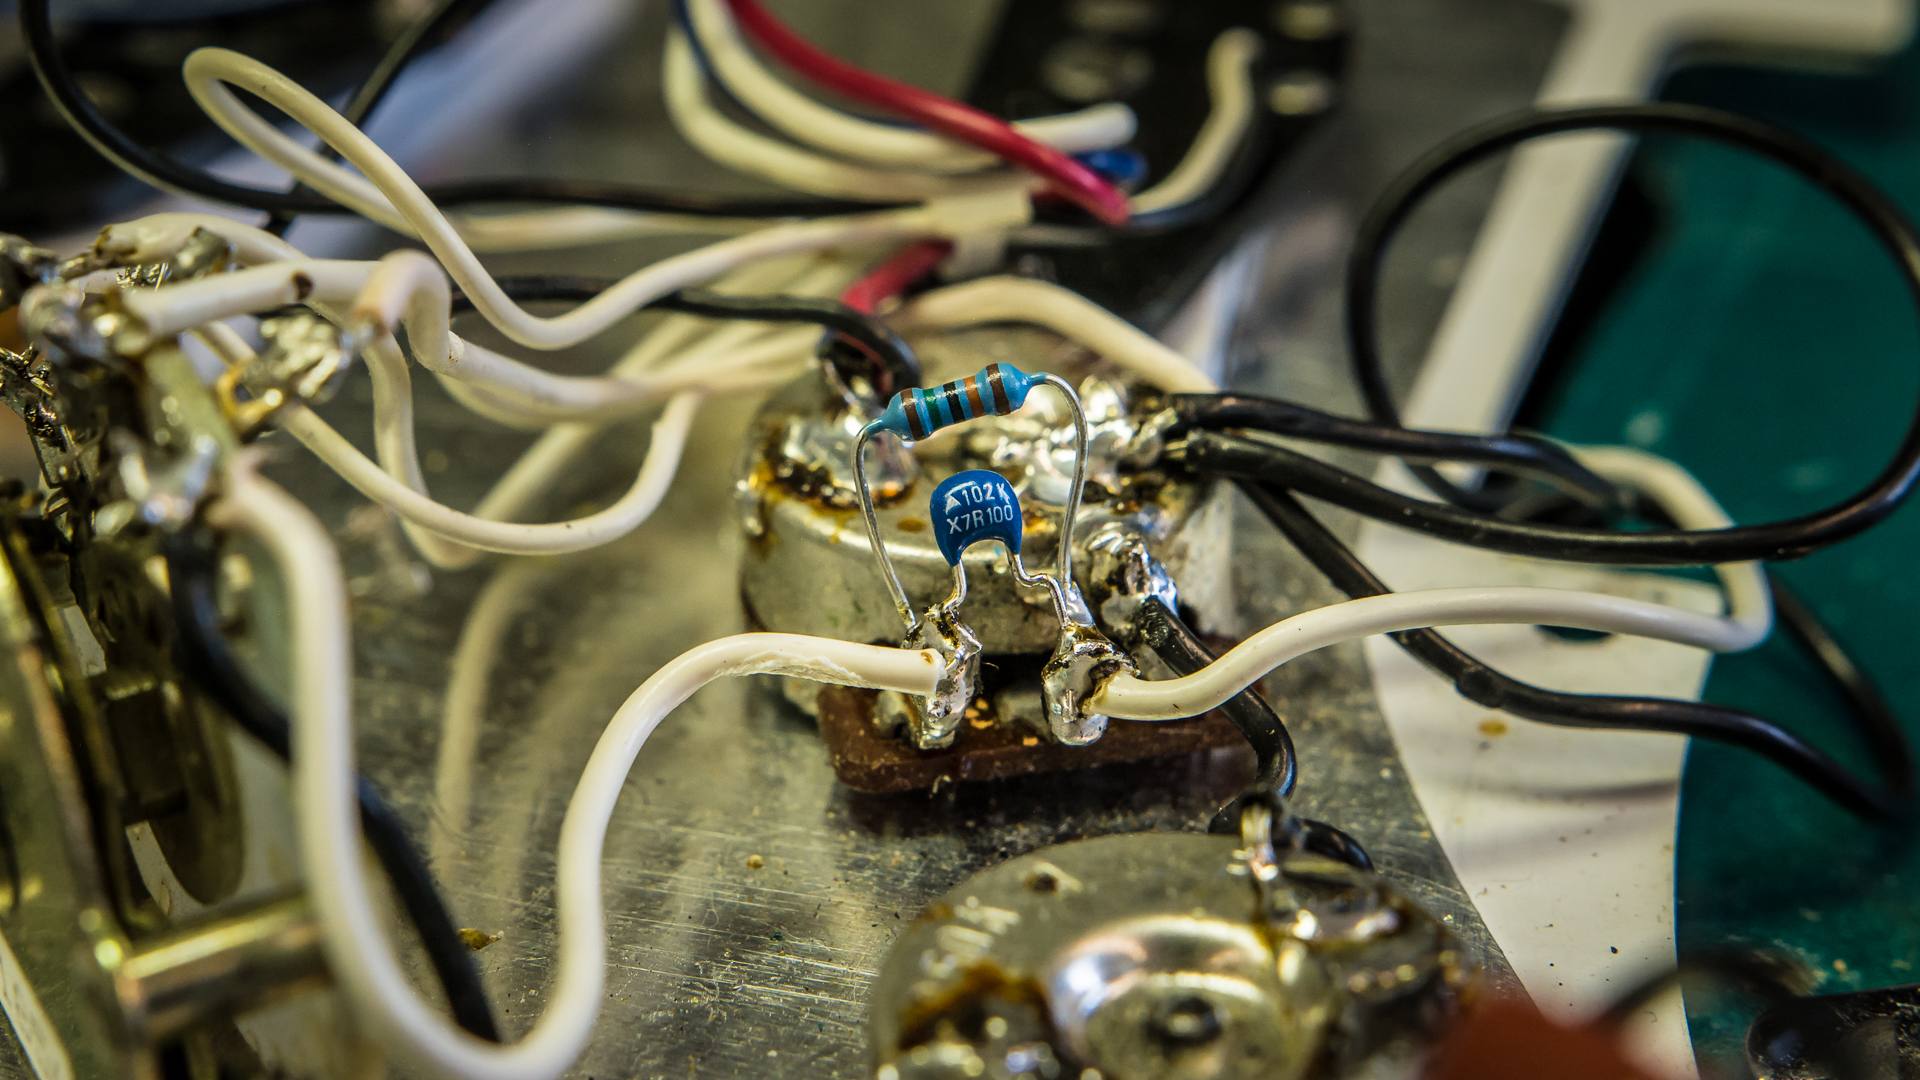 hight resolution of here s what our capacitor looked like when soldered to our volume pot s input and output terminals